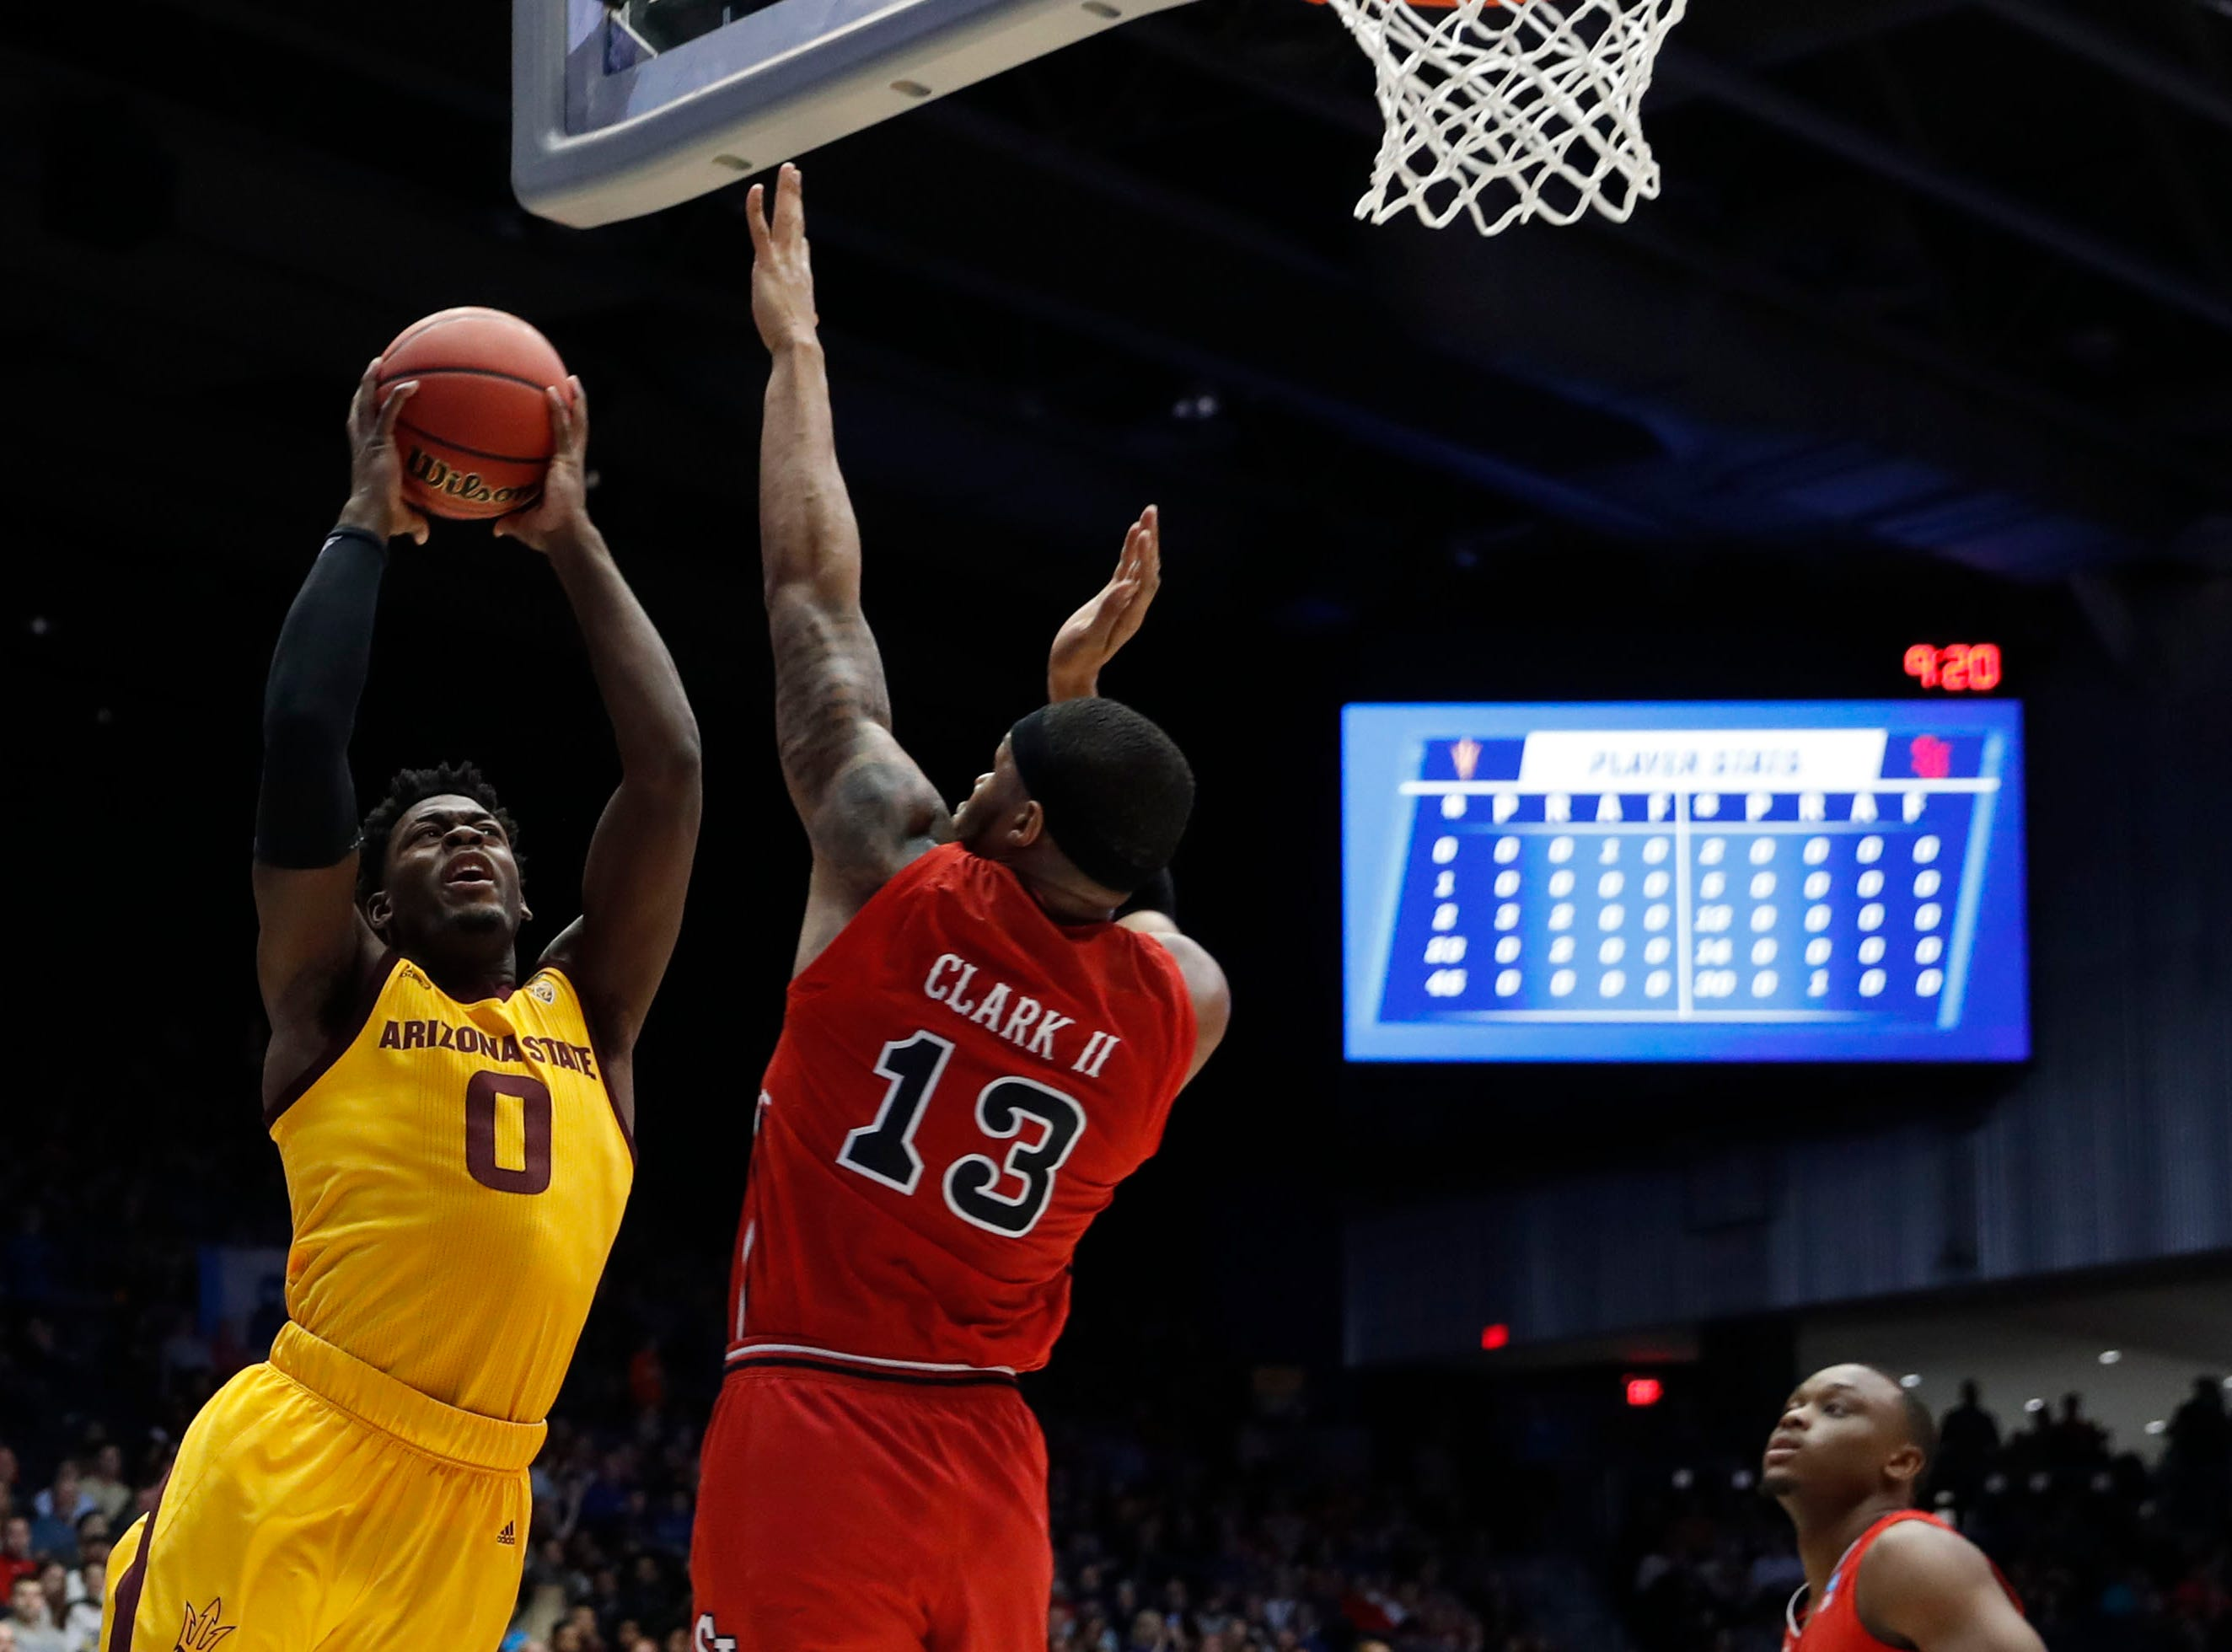 Mar 20, 2019; Dayton, OH, USA; Arizona State Sun Devils guard Luguentz Dort (0) goes to the basket defended by St. John's Red Storm guard LJ Figueroa (30) in the first half in the First Four of the 2019 NCAA Tournament at Dayton Arena. Mandatory Credit: Brian Spurlock -USA TODAY Sports